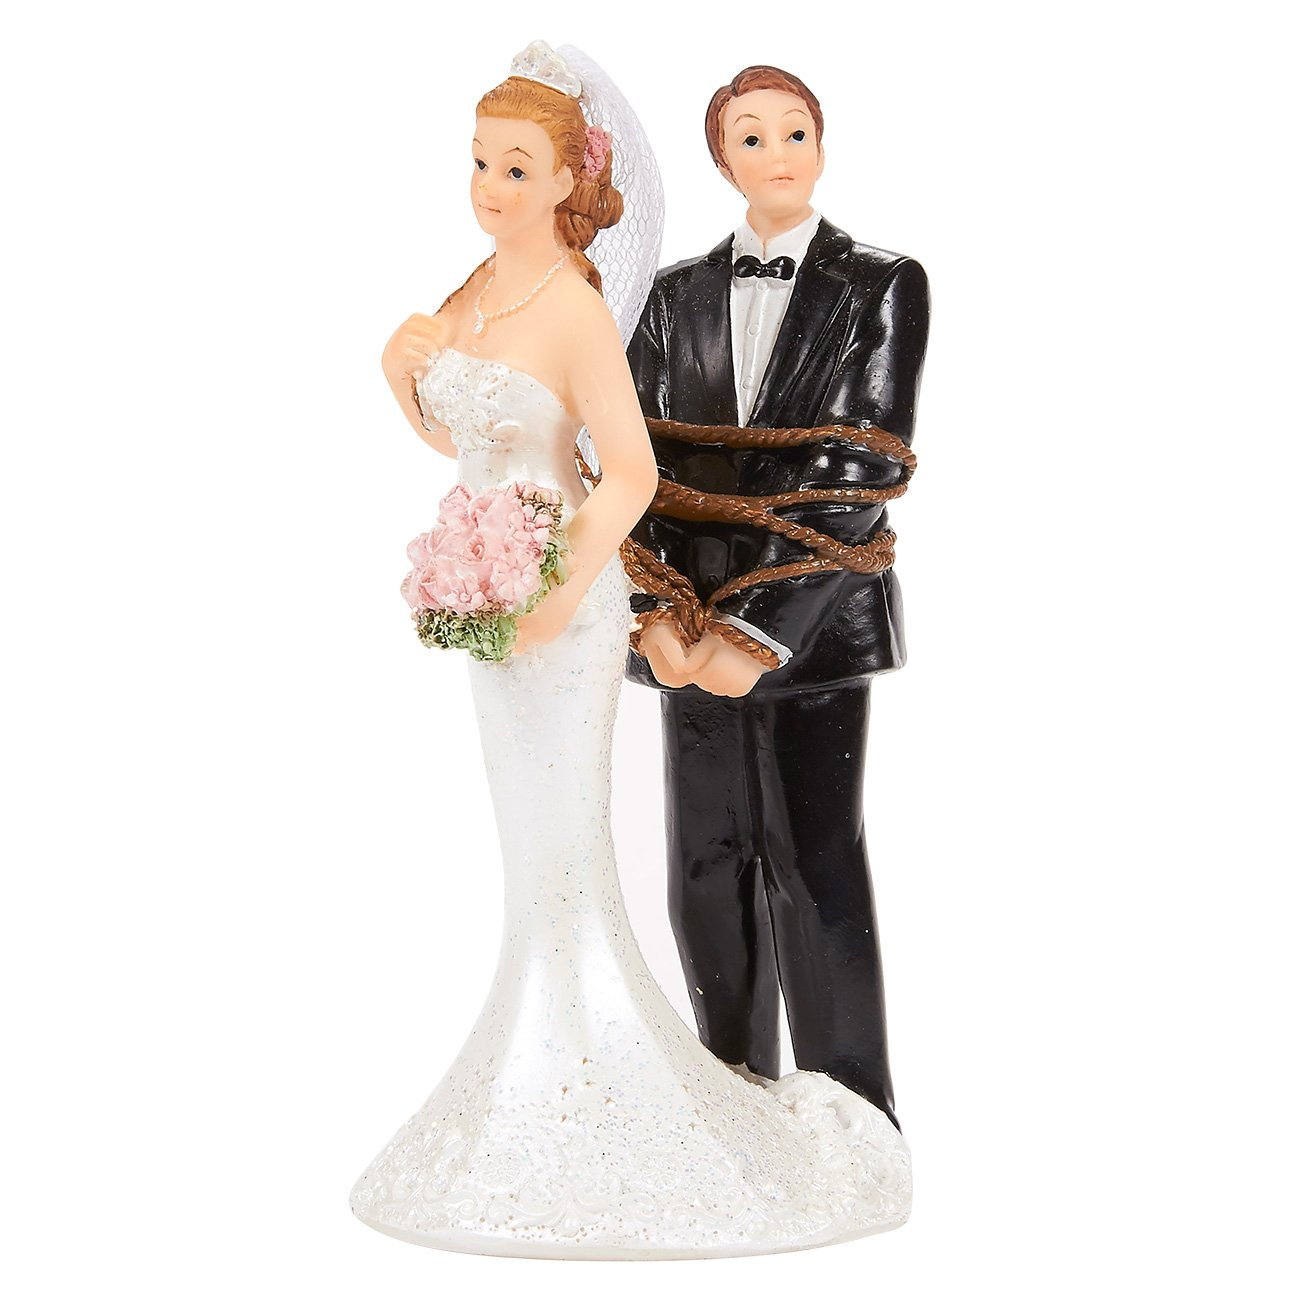 Wedding Cake Topper - Bride Tied up Groom Figurines